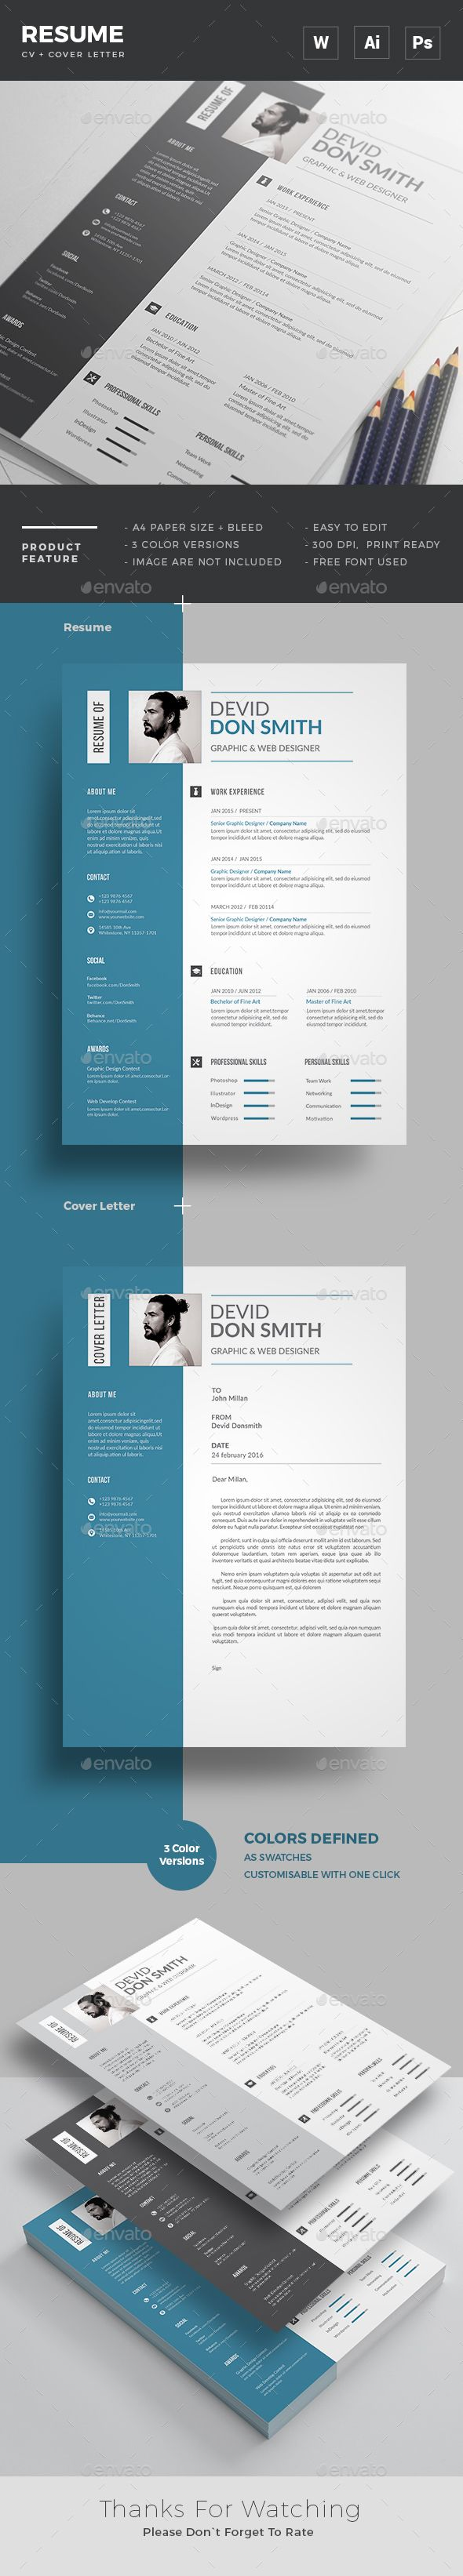 Cv Templates Pdf%0A  Resume  Resumes Stationery Download here  https   graphicriver net